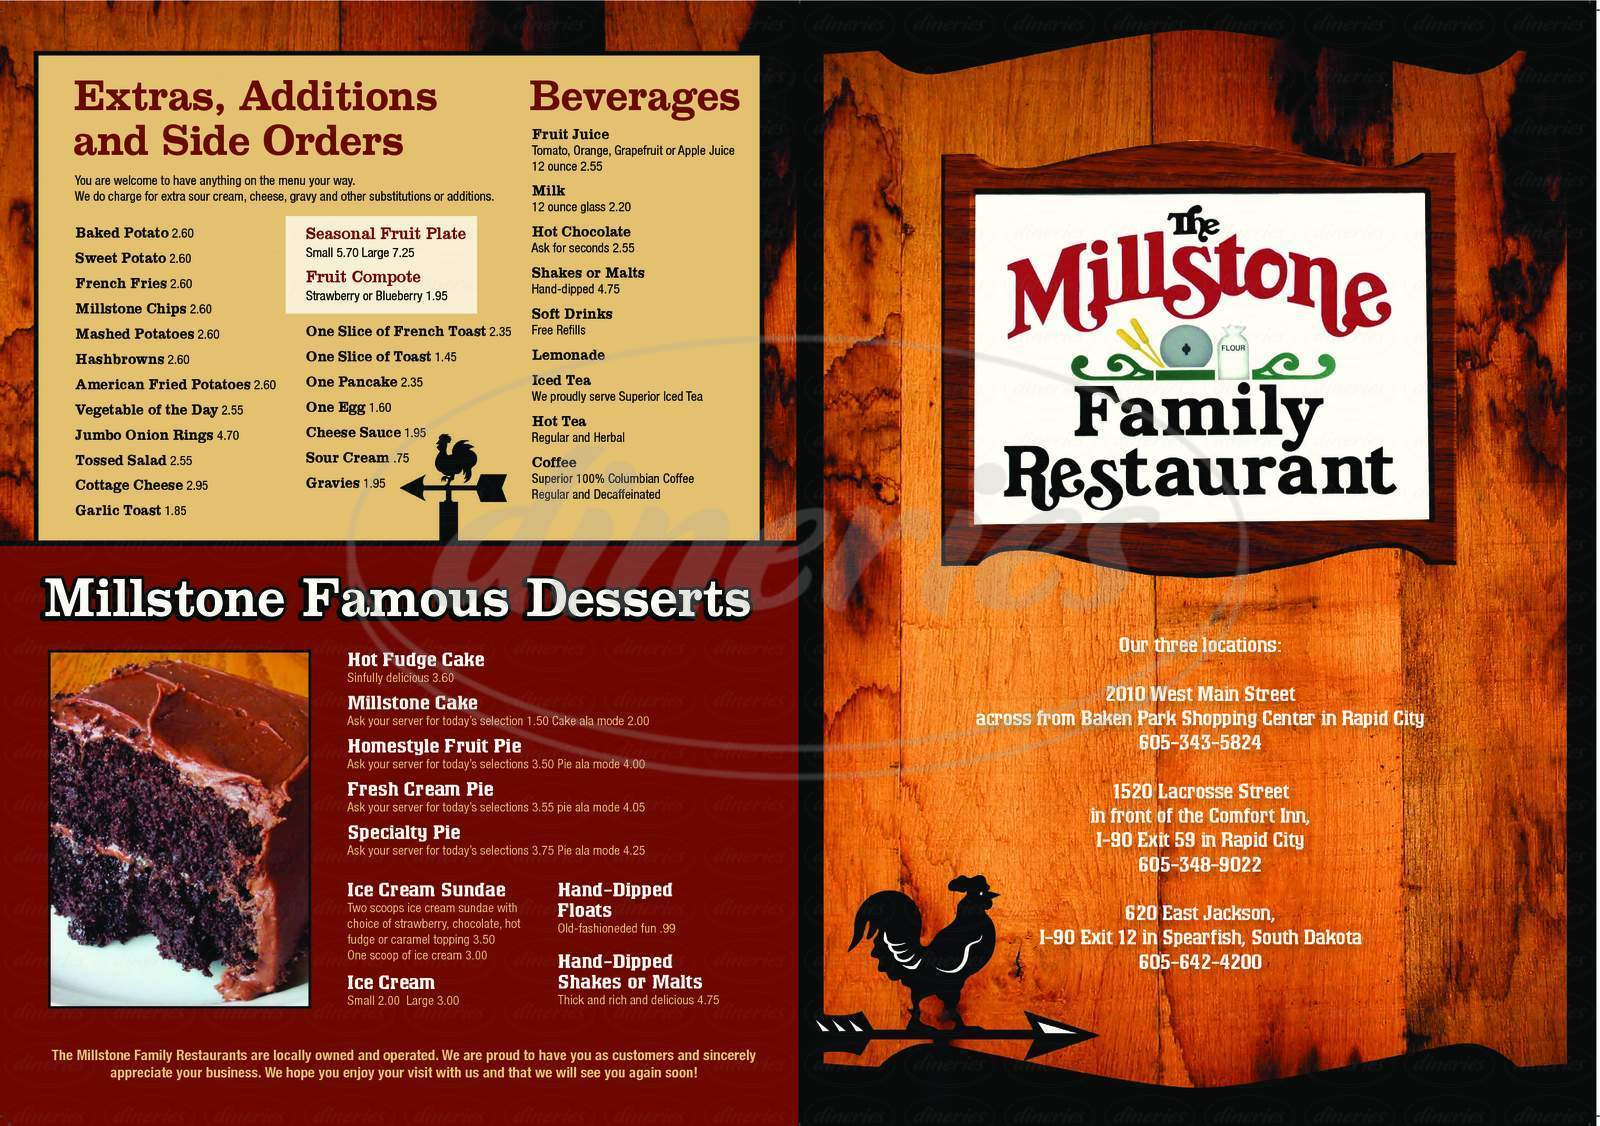 menu for The Millstone Family Restaurant